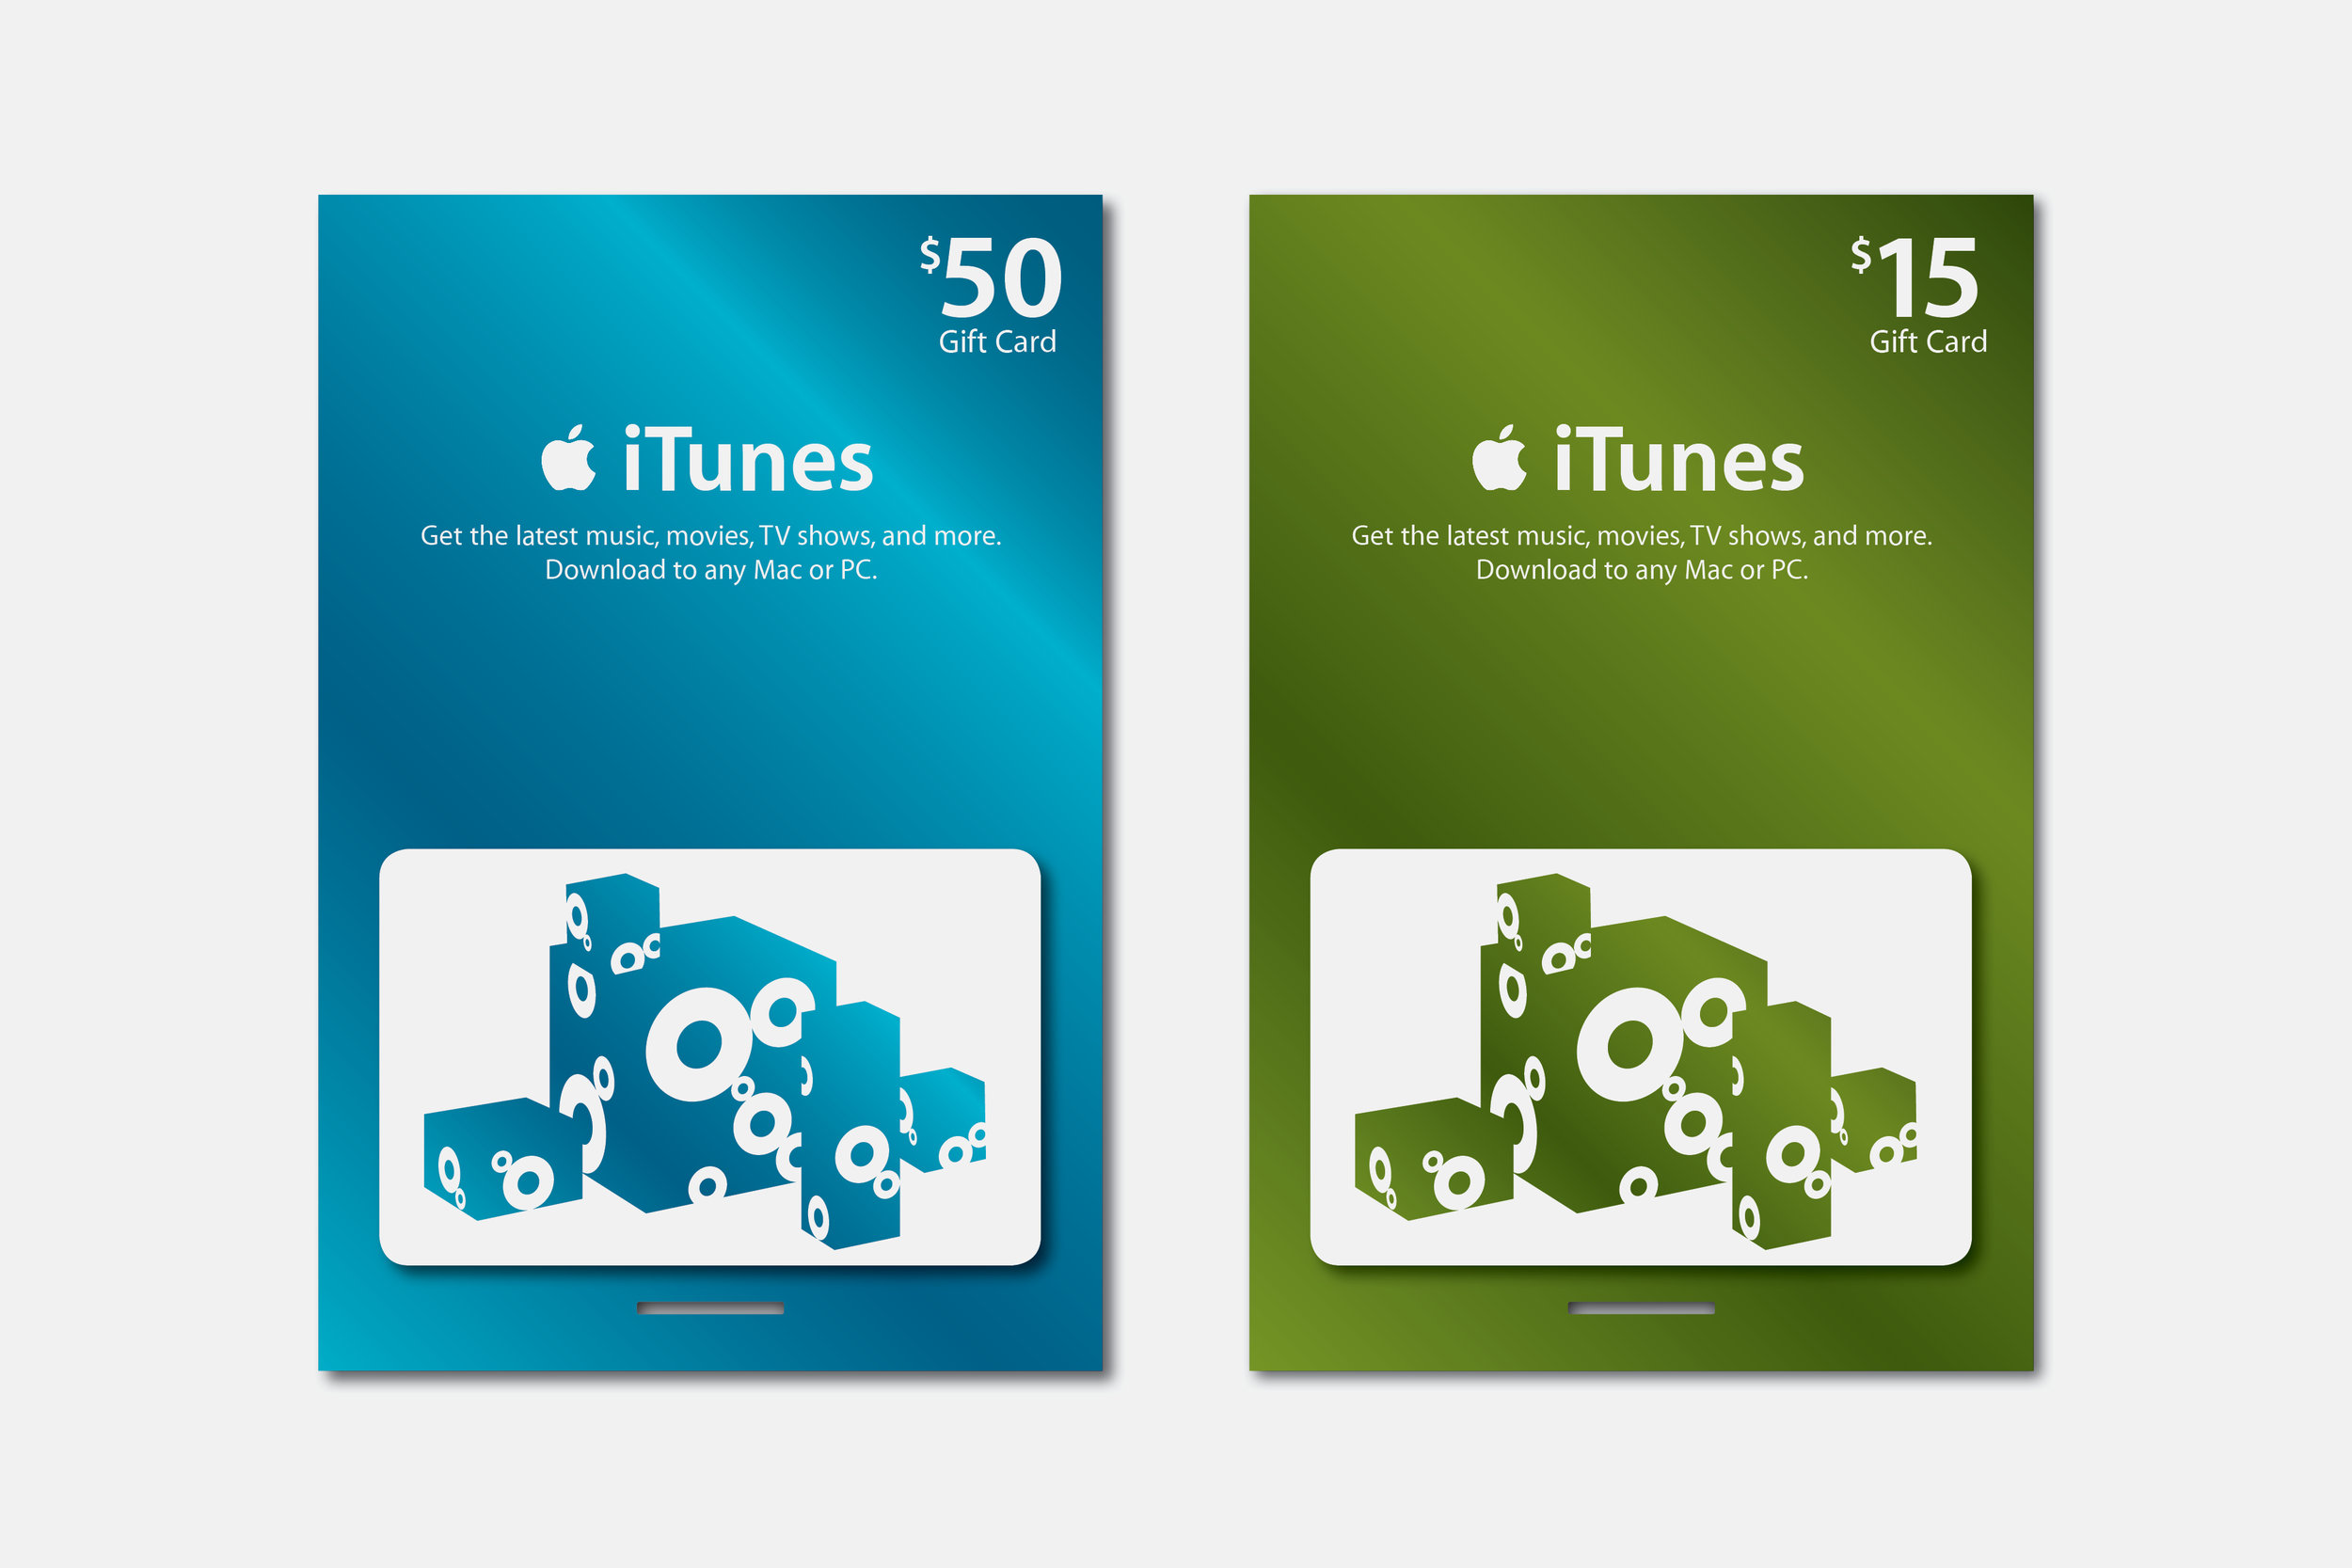 iTunes outtakes4.jpg